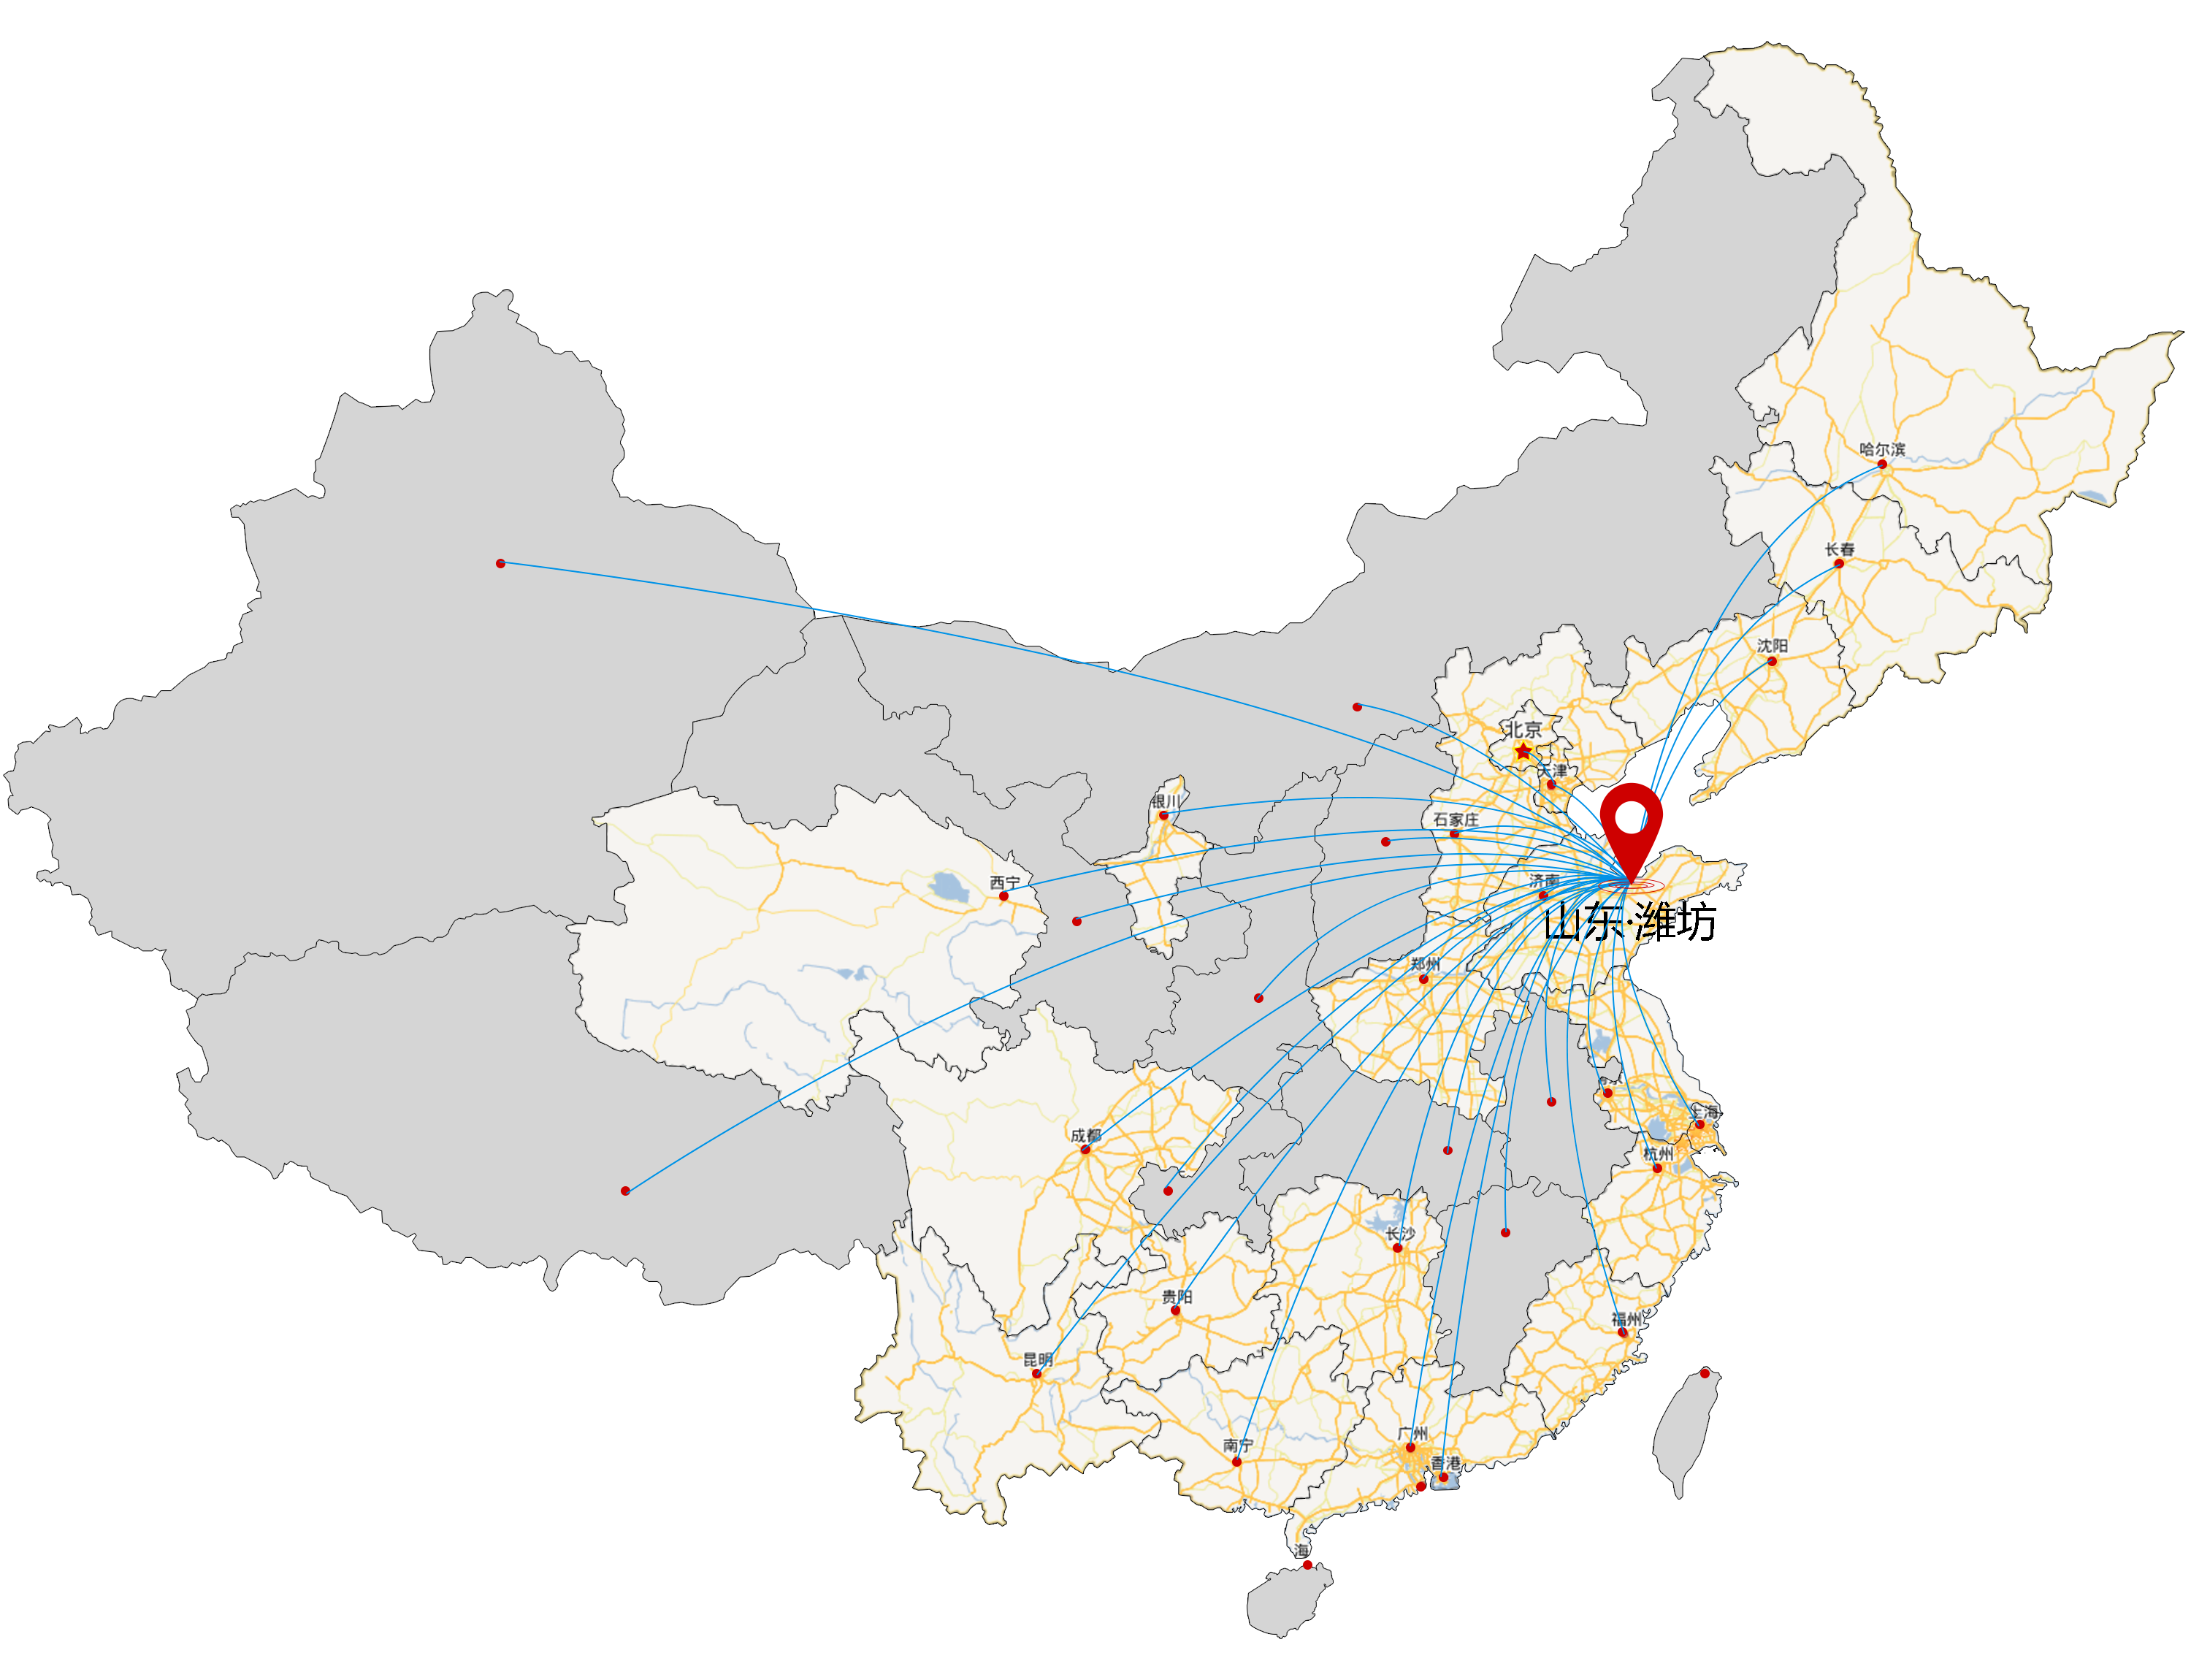 ChineseMap-潍坊.png